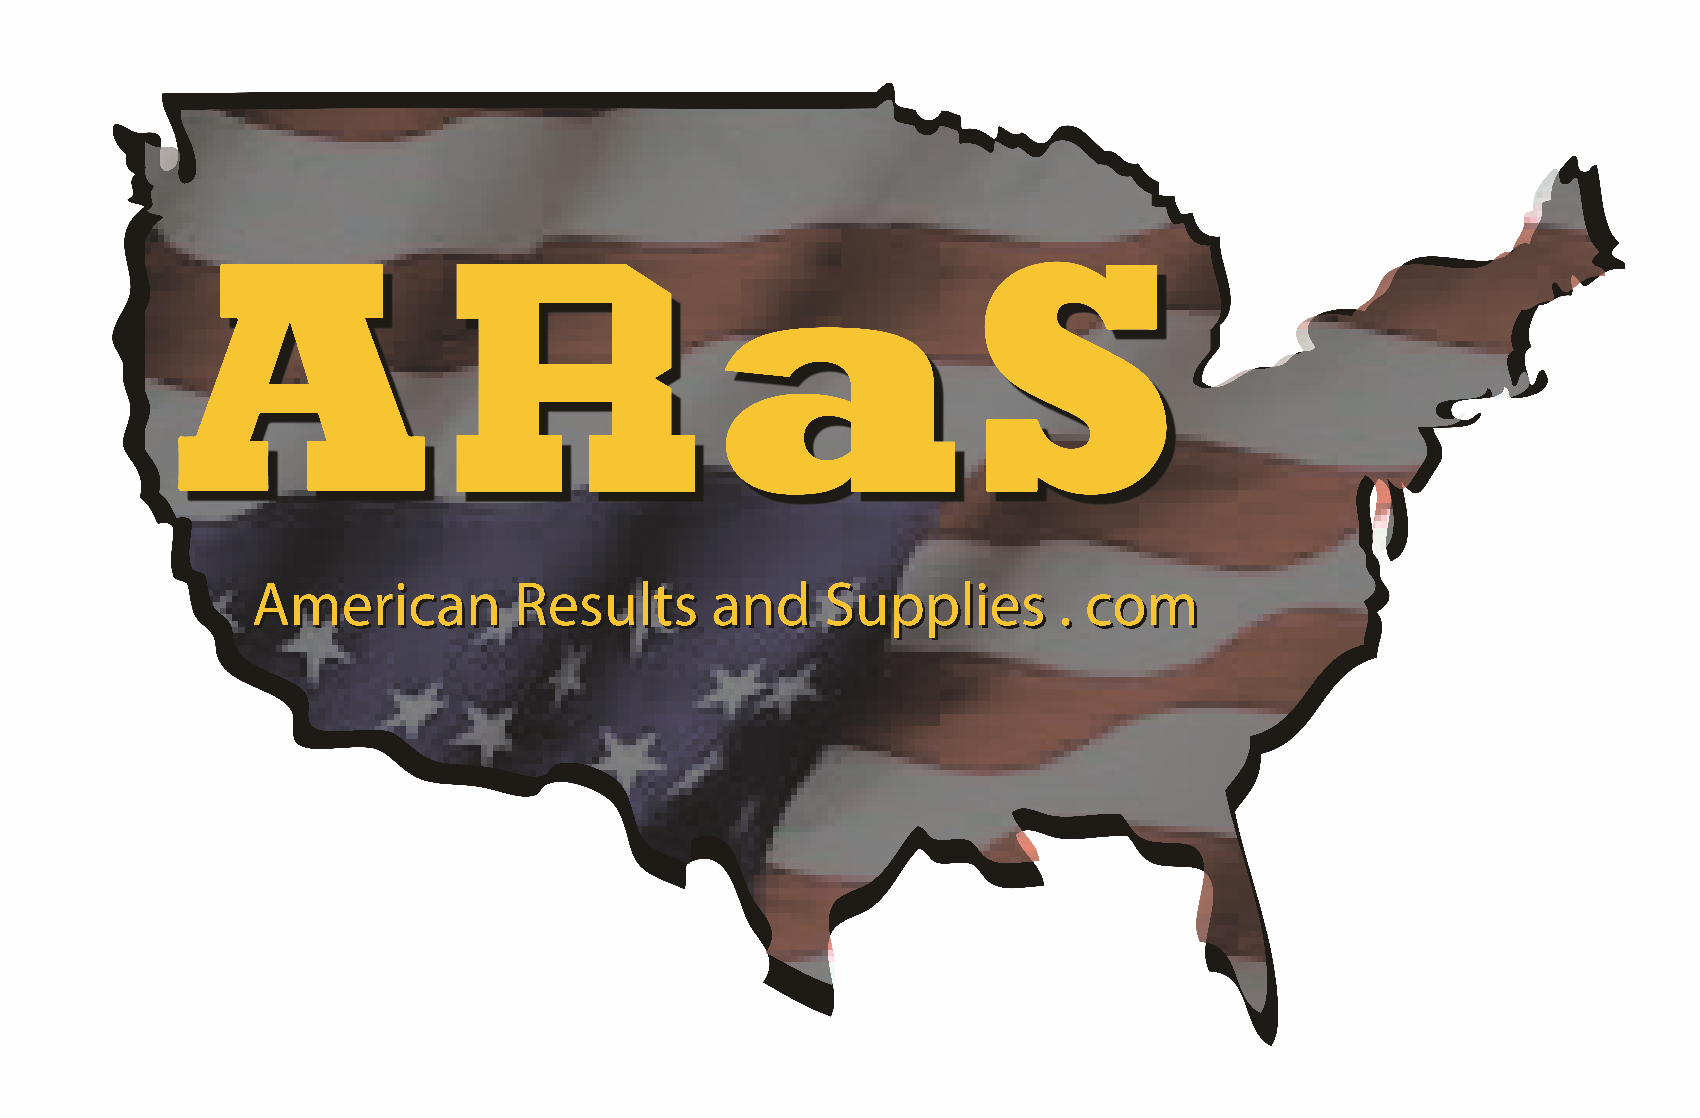 Aras log brown map of the US with the letters ARAS in yellow on top